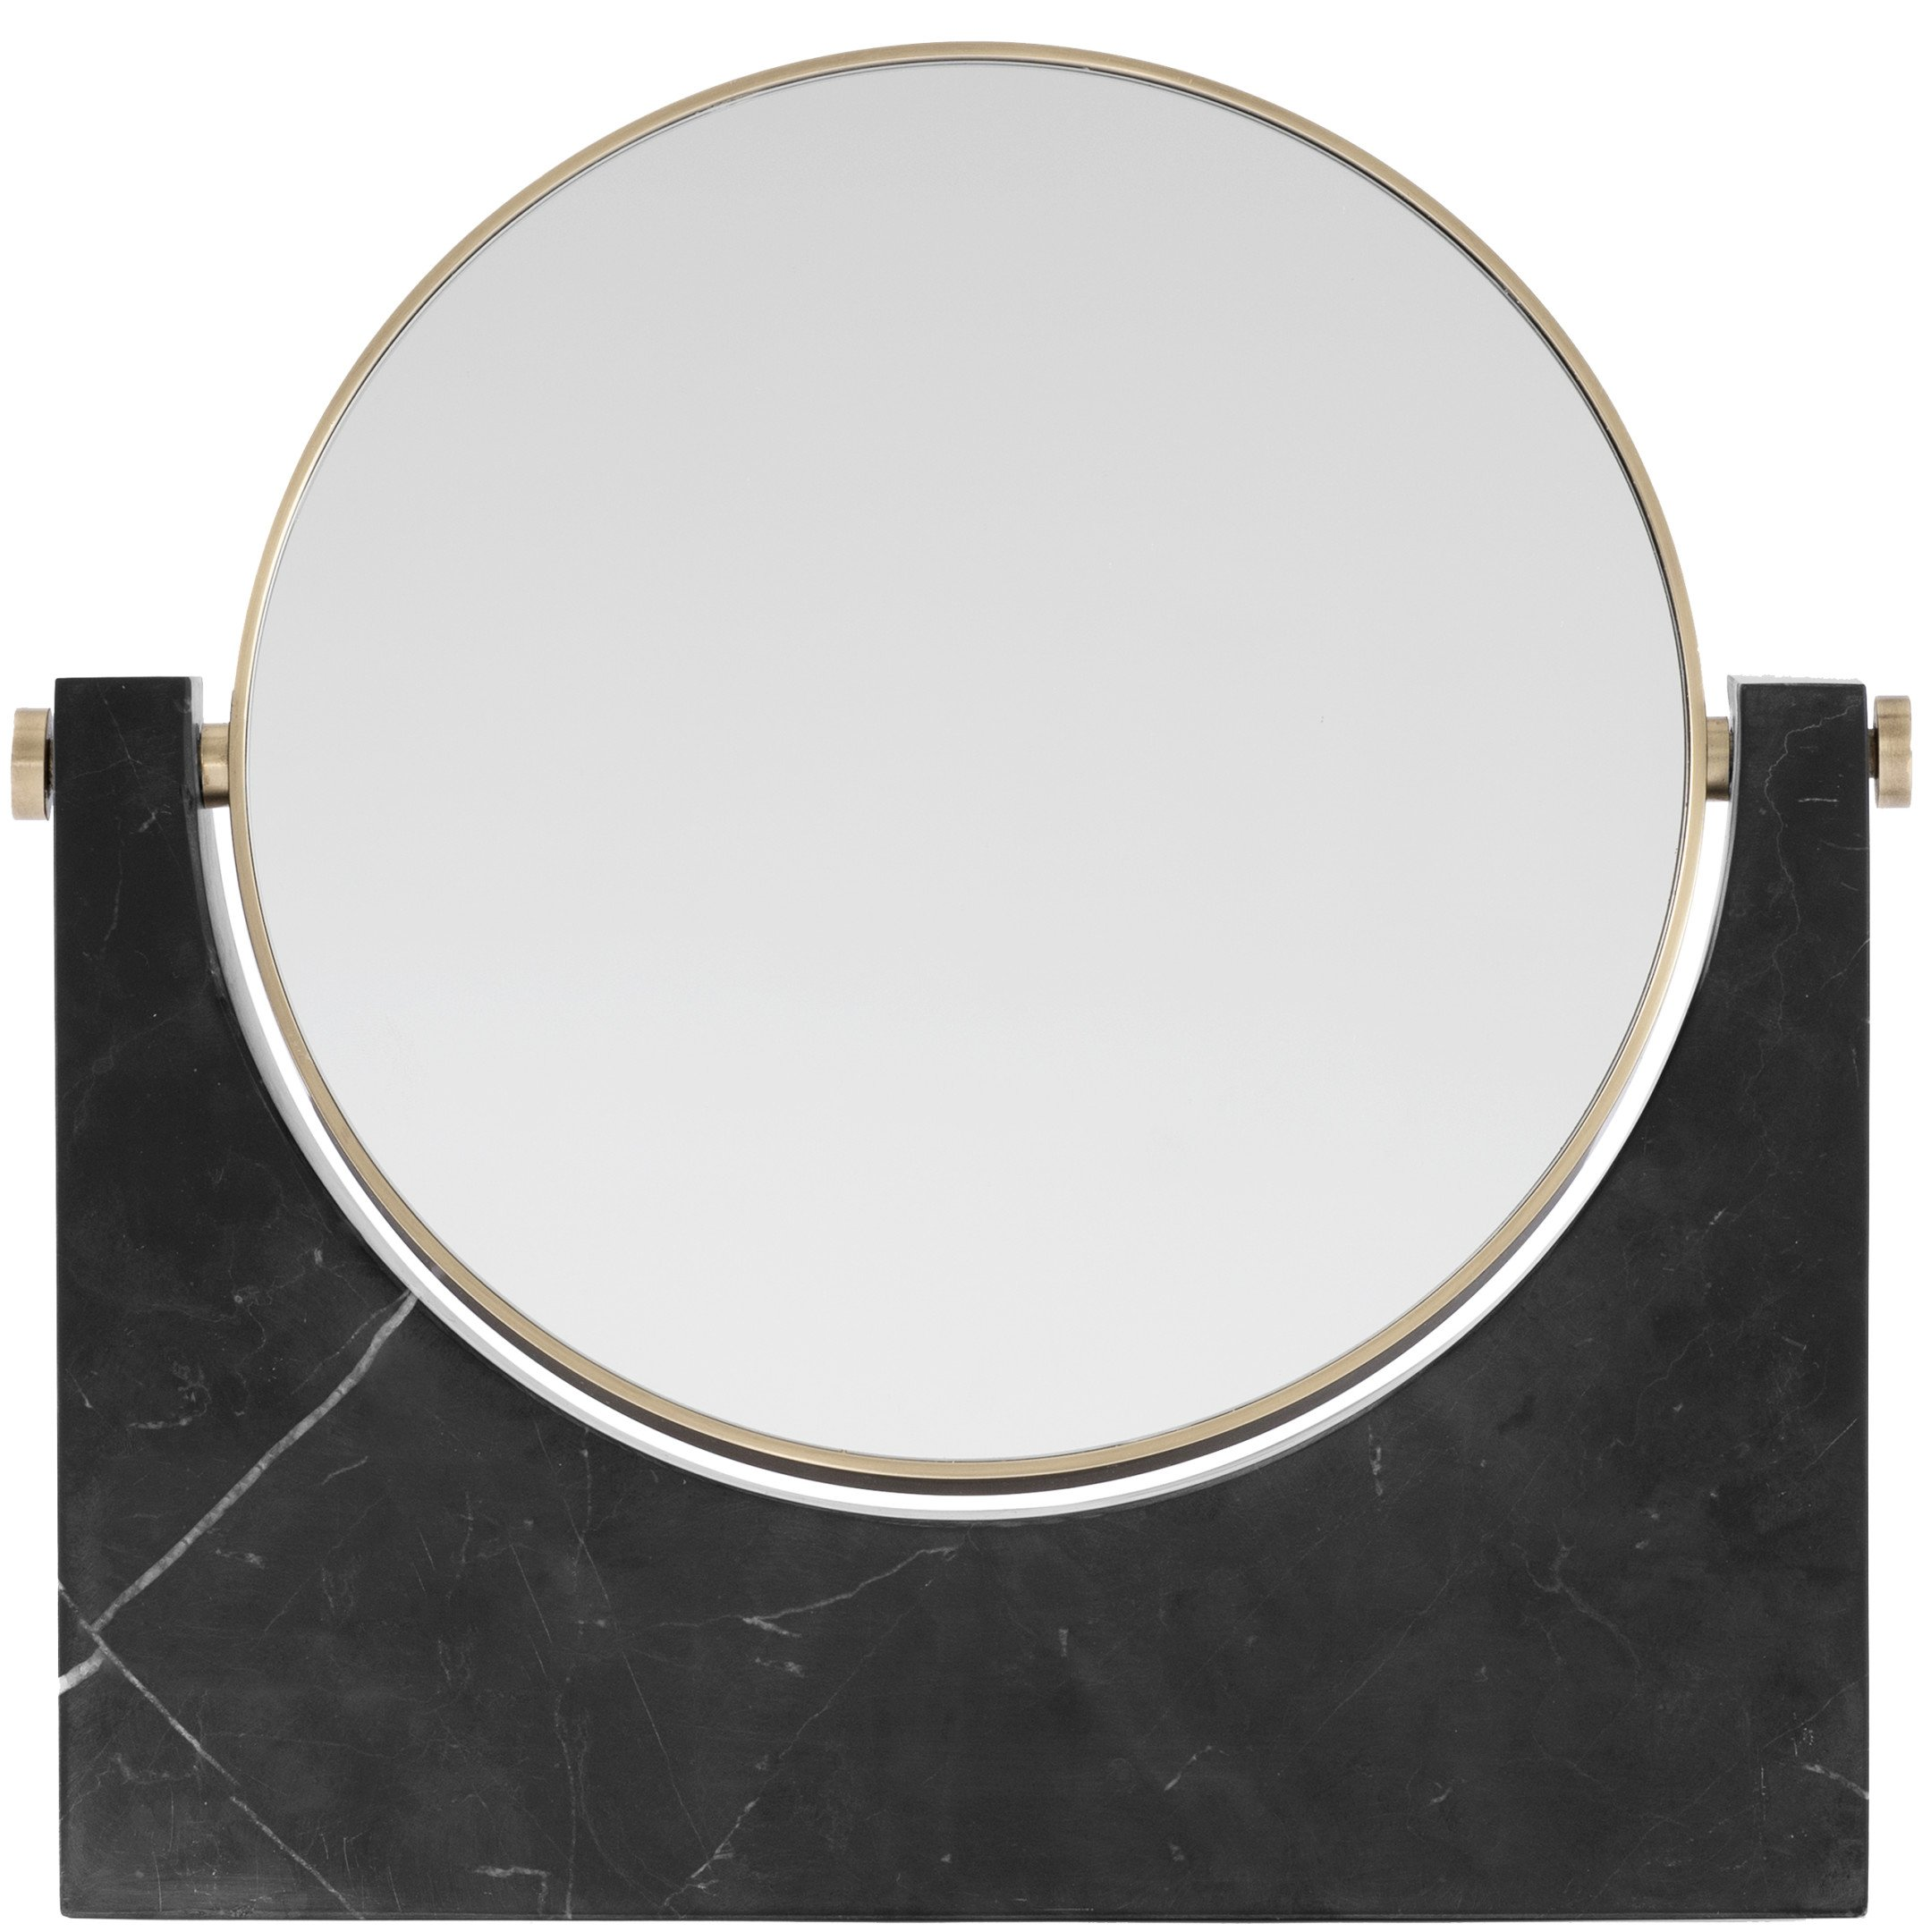 Pepe Marquina Marble Mirror by Studio Pepe for Menu